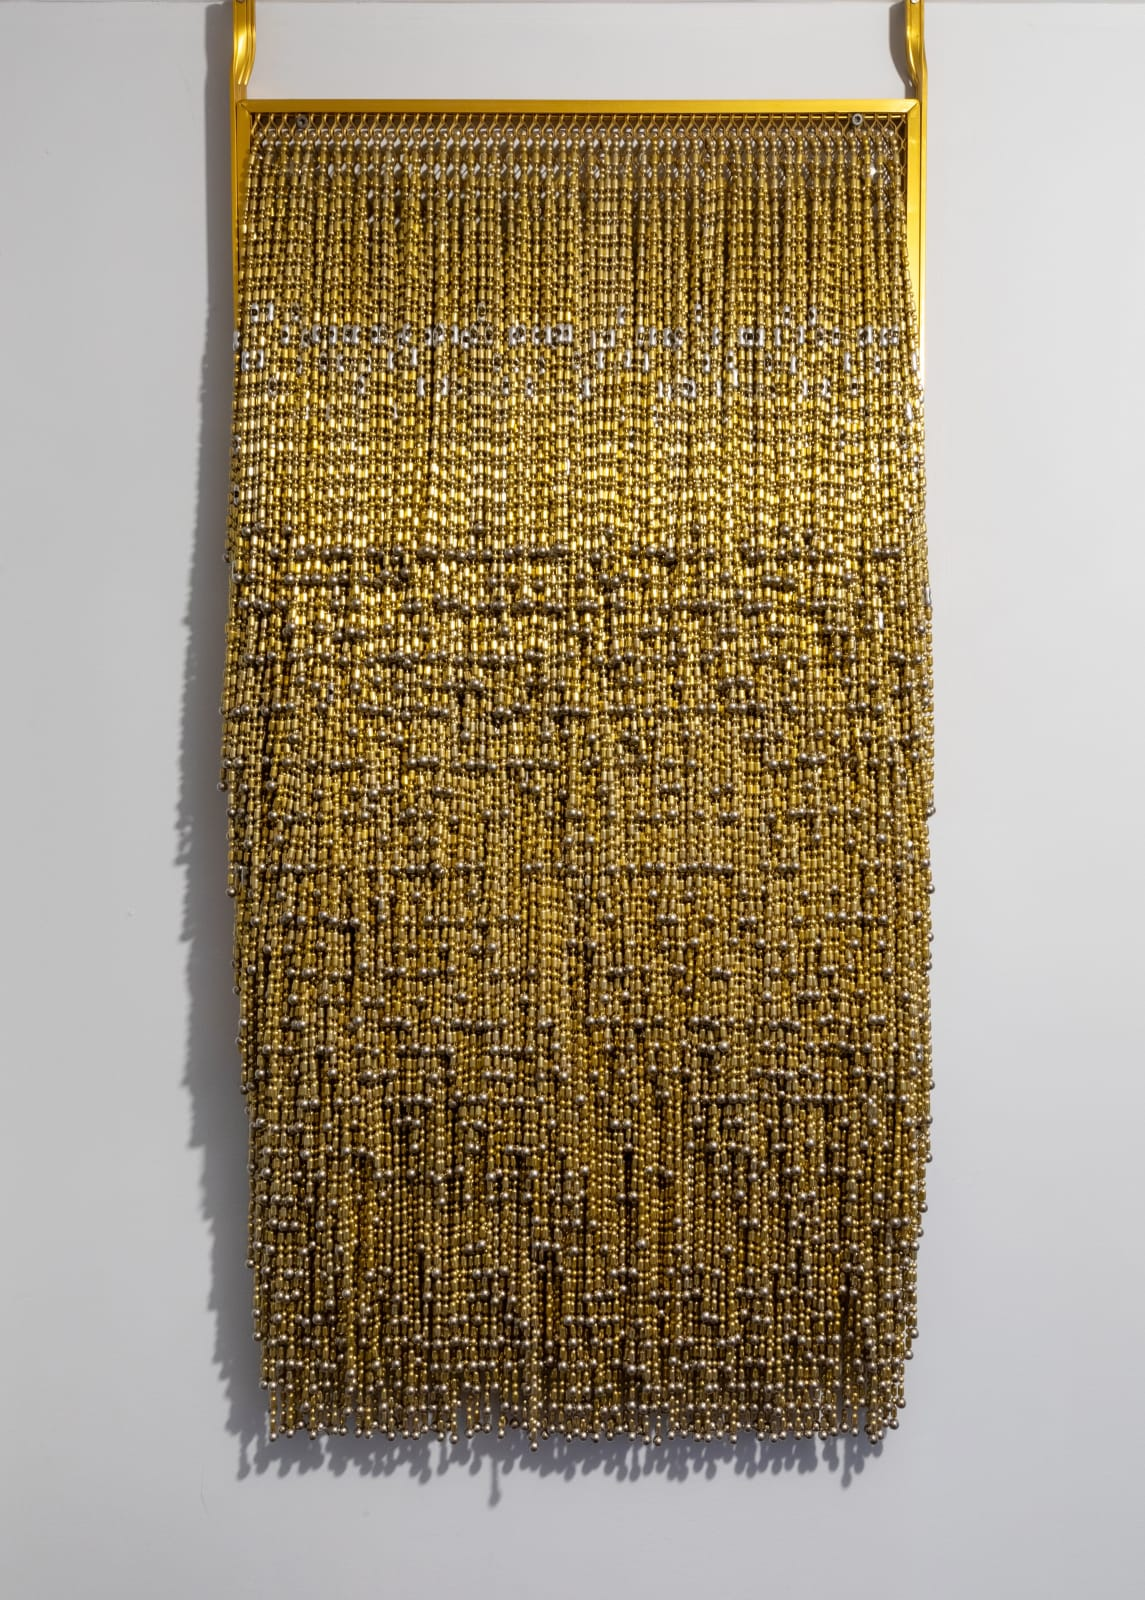 Alice Hope Untitled, 2020 Ball chain, anodized door screen 20 x 43 in. (AHo 37) $9,000